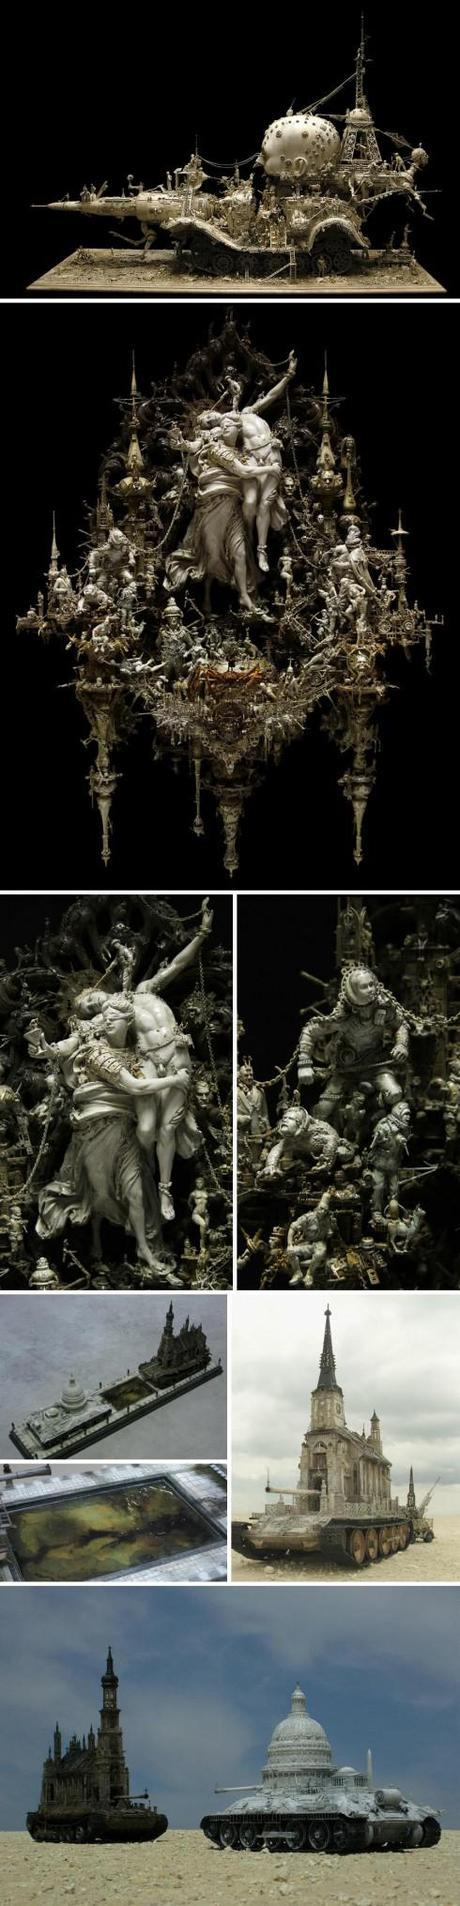 Incredibly intricate sculptures of gods, goddesses, monsters, and war, Kris Kuksi, baroque, rcococo